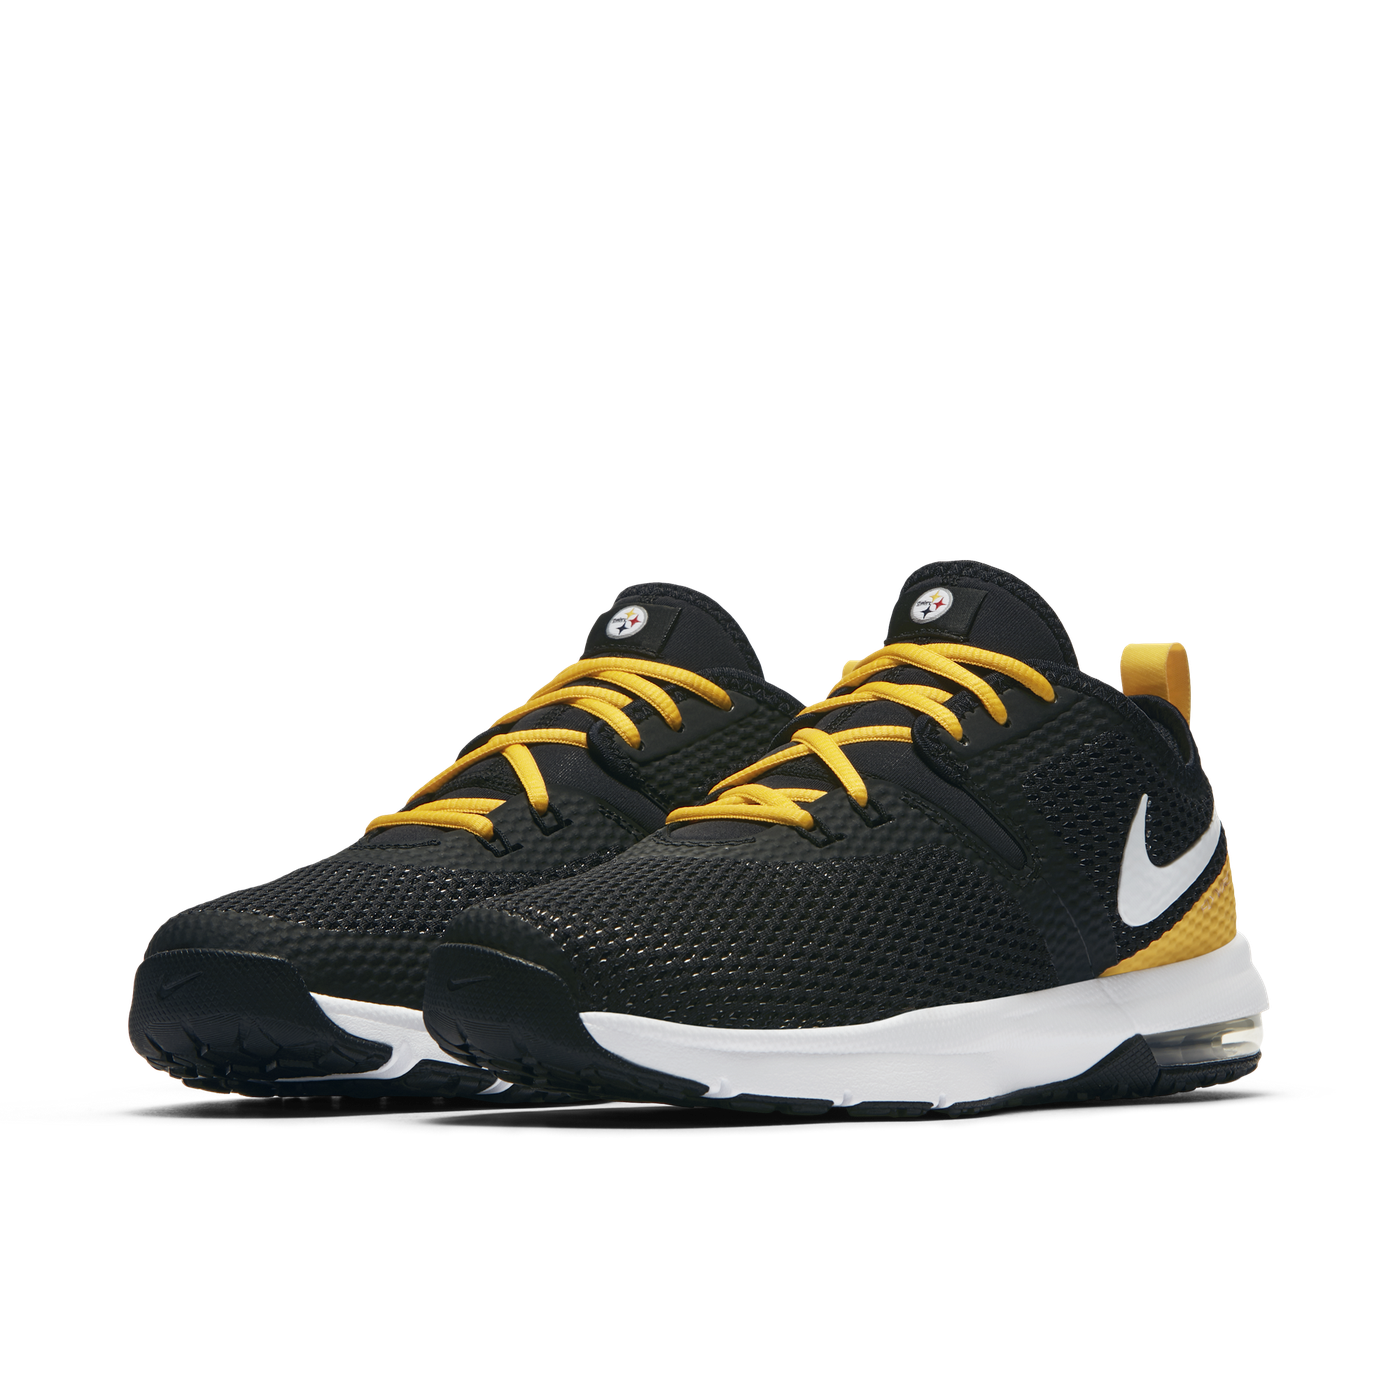 55ca76573c2d7 Nike releases new NFL-themed Air Max Typha 2 shoe collection ...